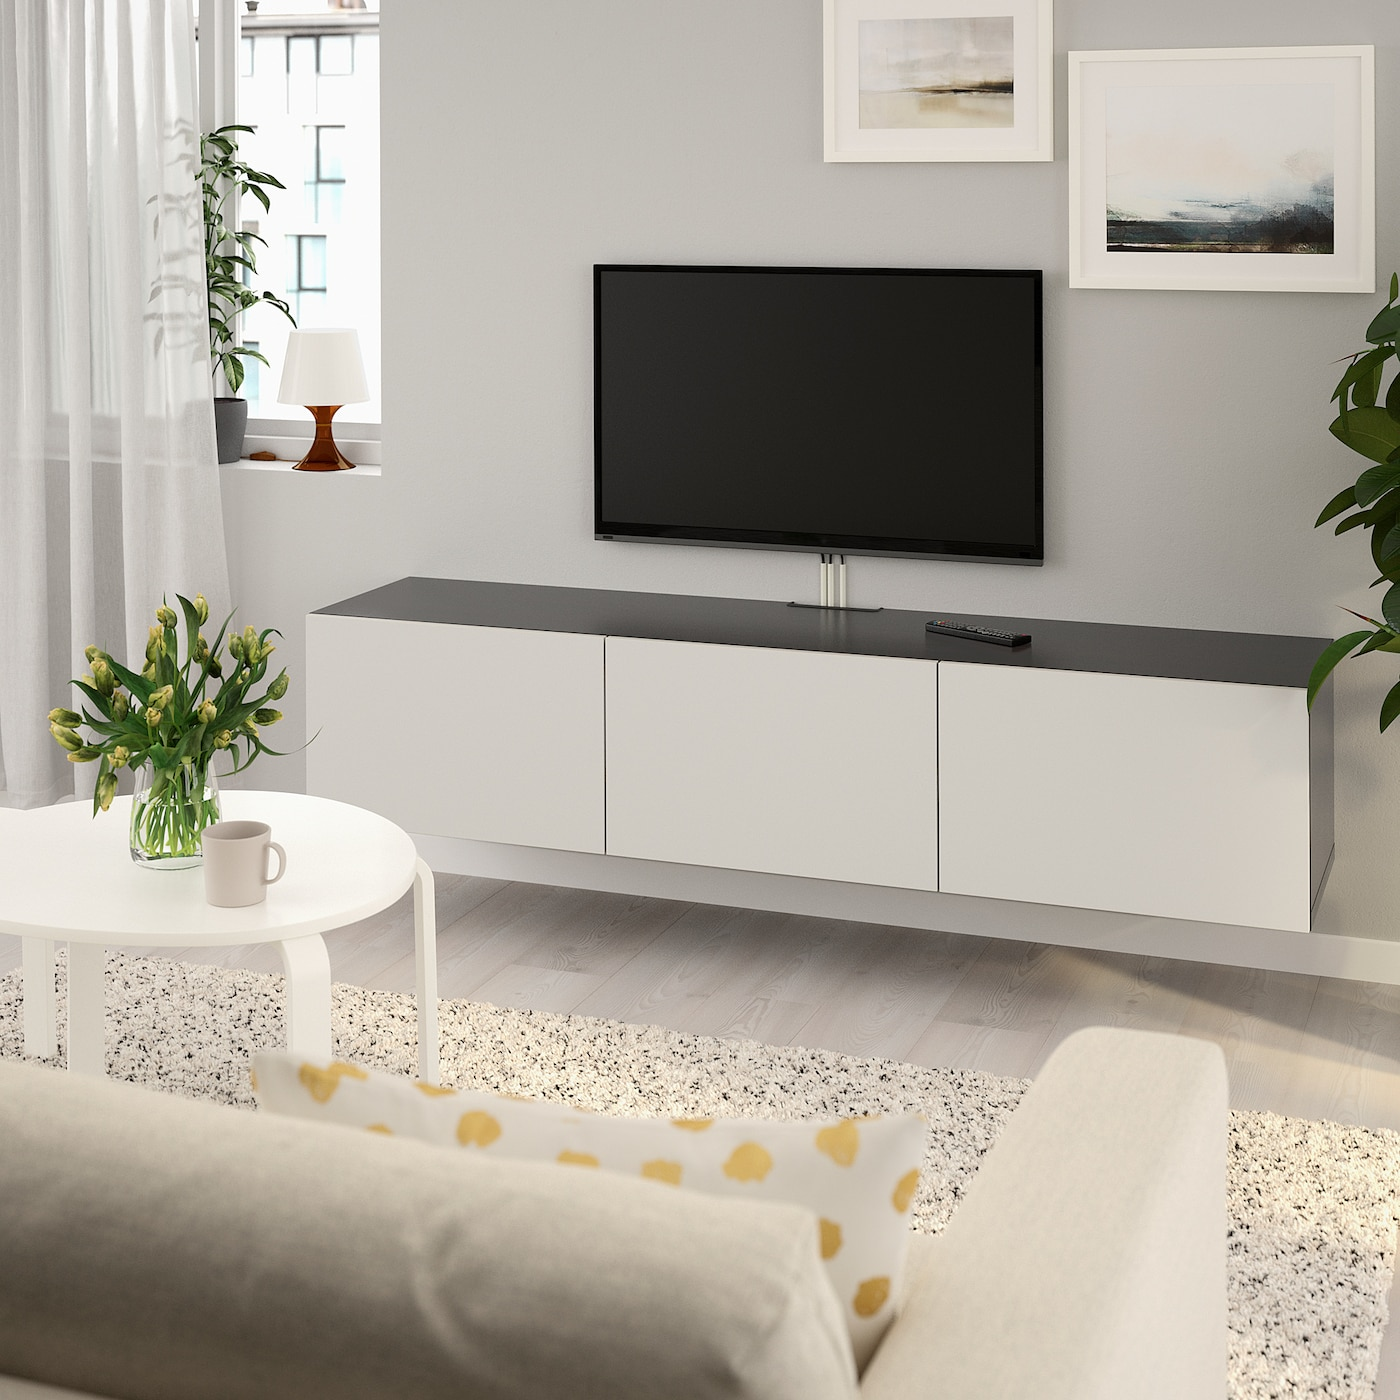 Tv Meubel Ikea.Besta Tv Unit With Doors Black Brown Lappviken Light Gray 70 7